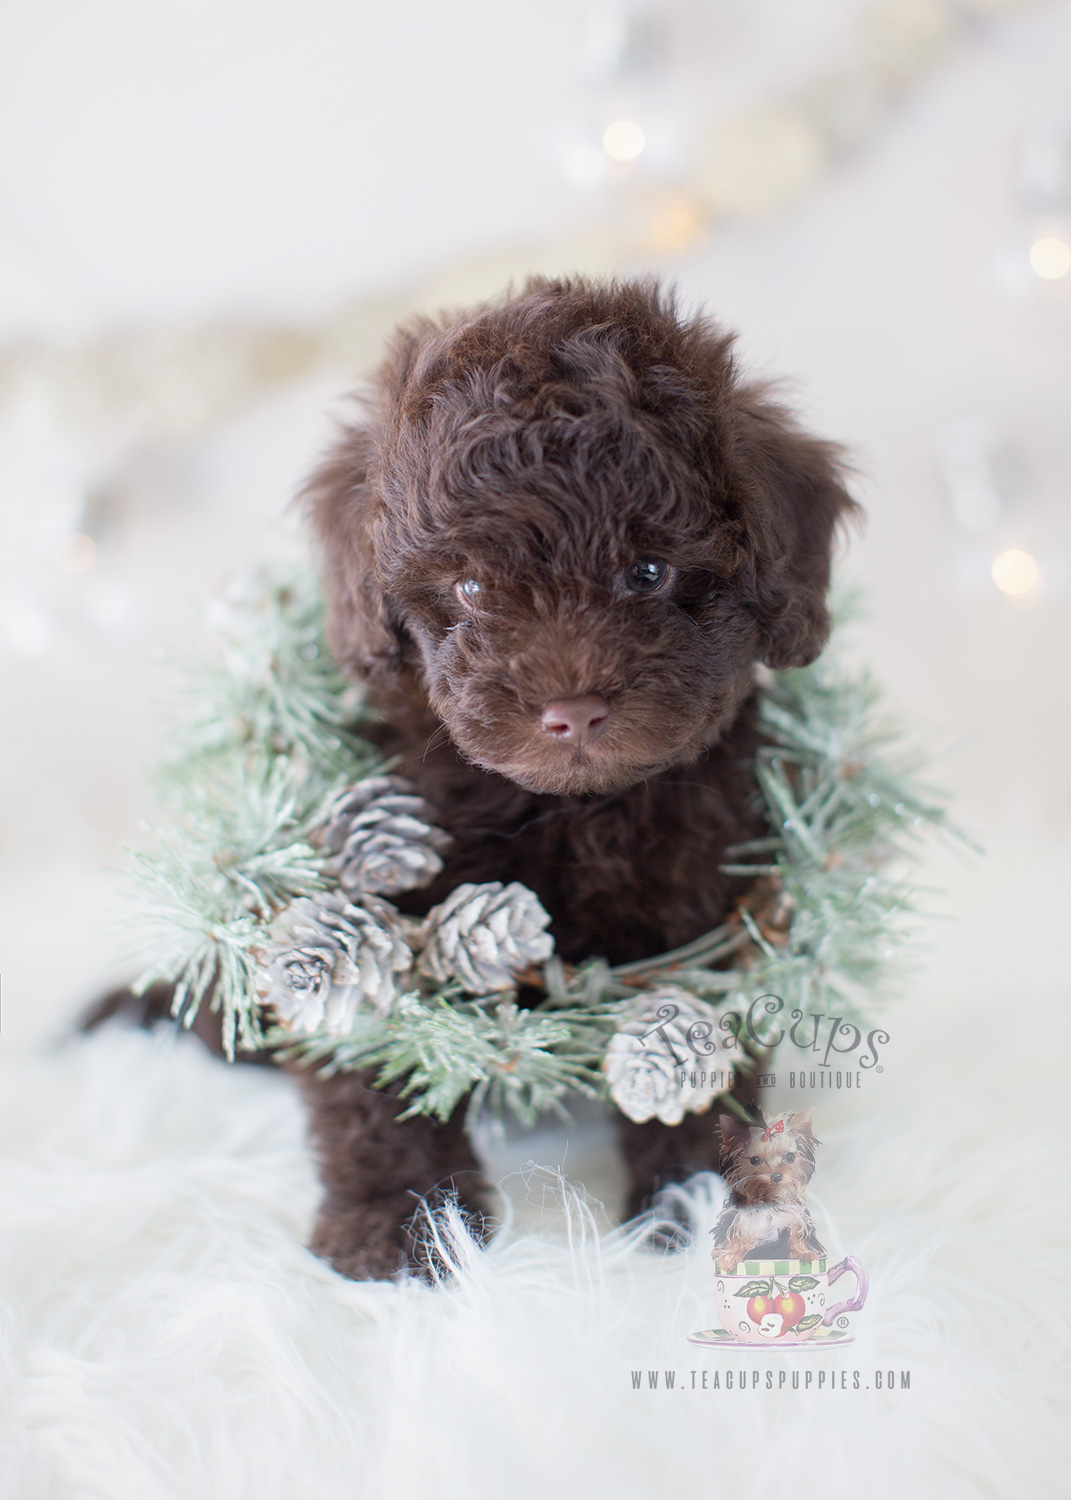 For Sale #295 Chocolate Poodle Puppy